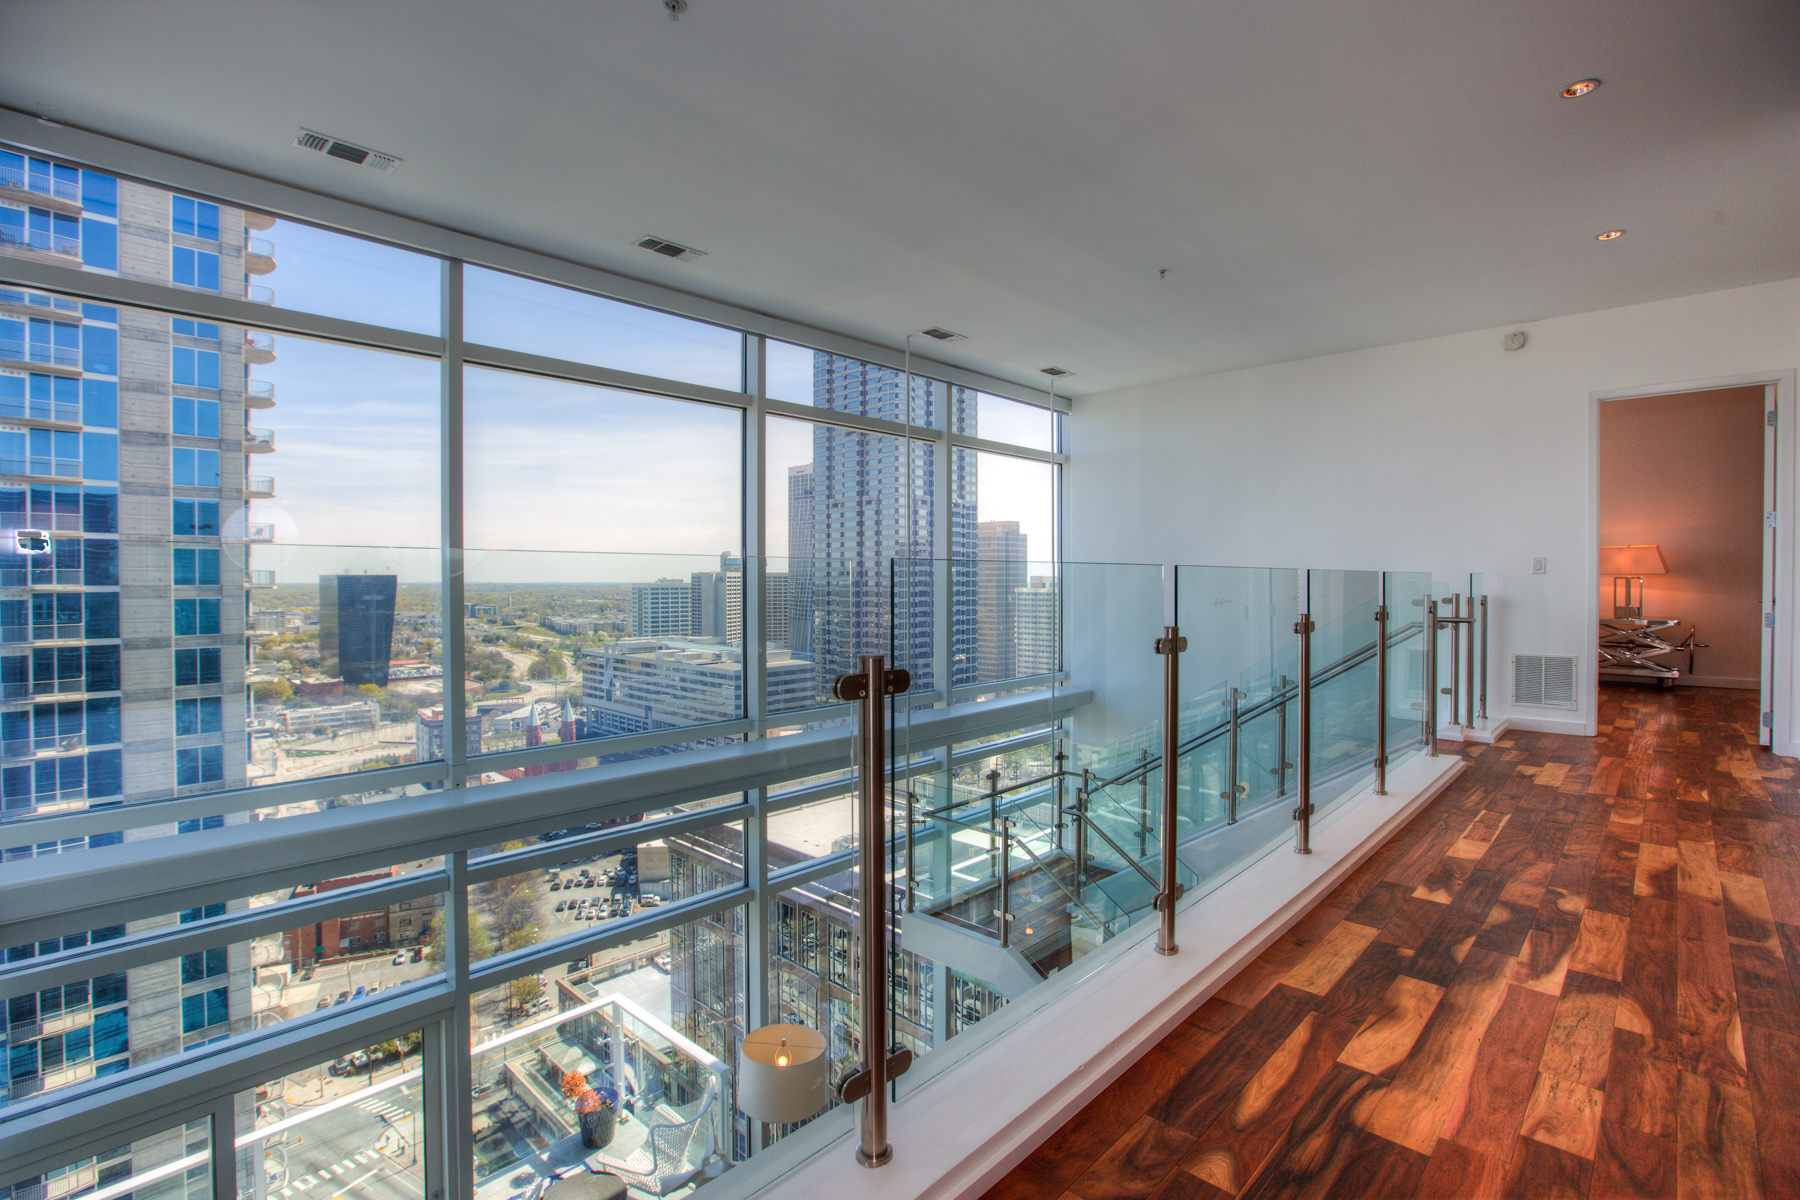 Additional photo for property listing at Sophisticated 2-Level Atlanta Penthouse with Luxury Hotel Amenities 45 Ivan Allen Jr Boulevard PH#2706 Atlanta, Georgia 30308 Hoa Kỳ